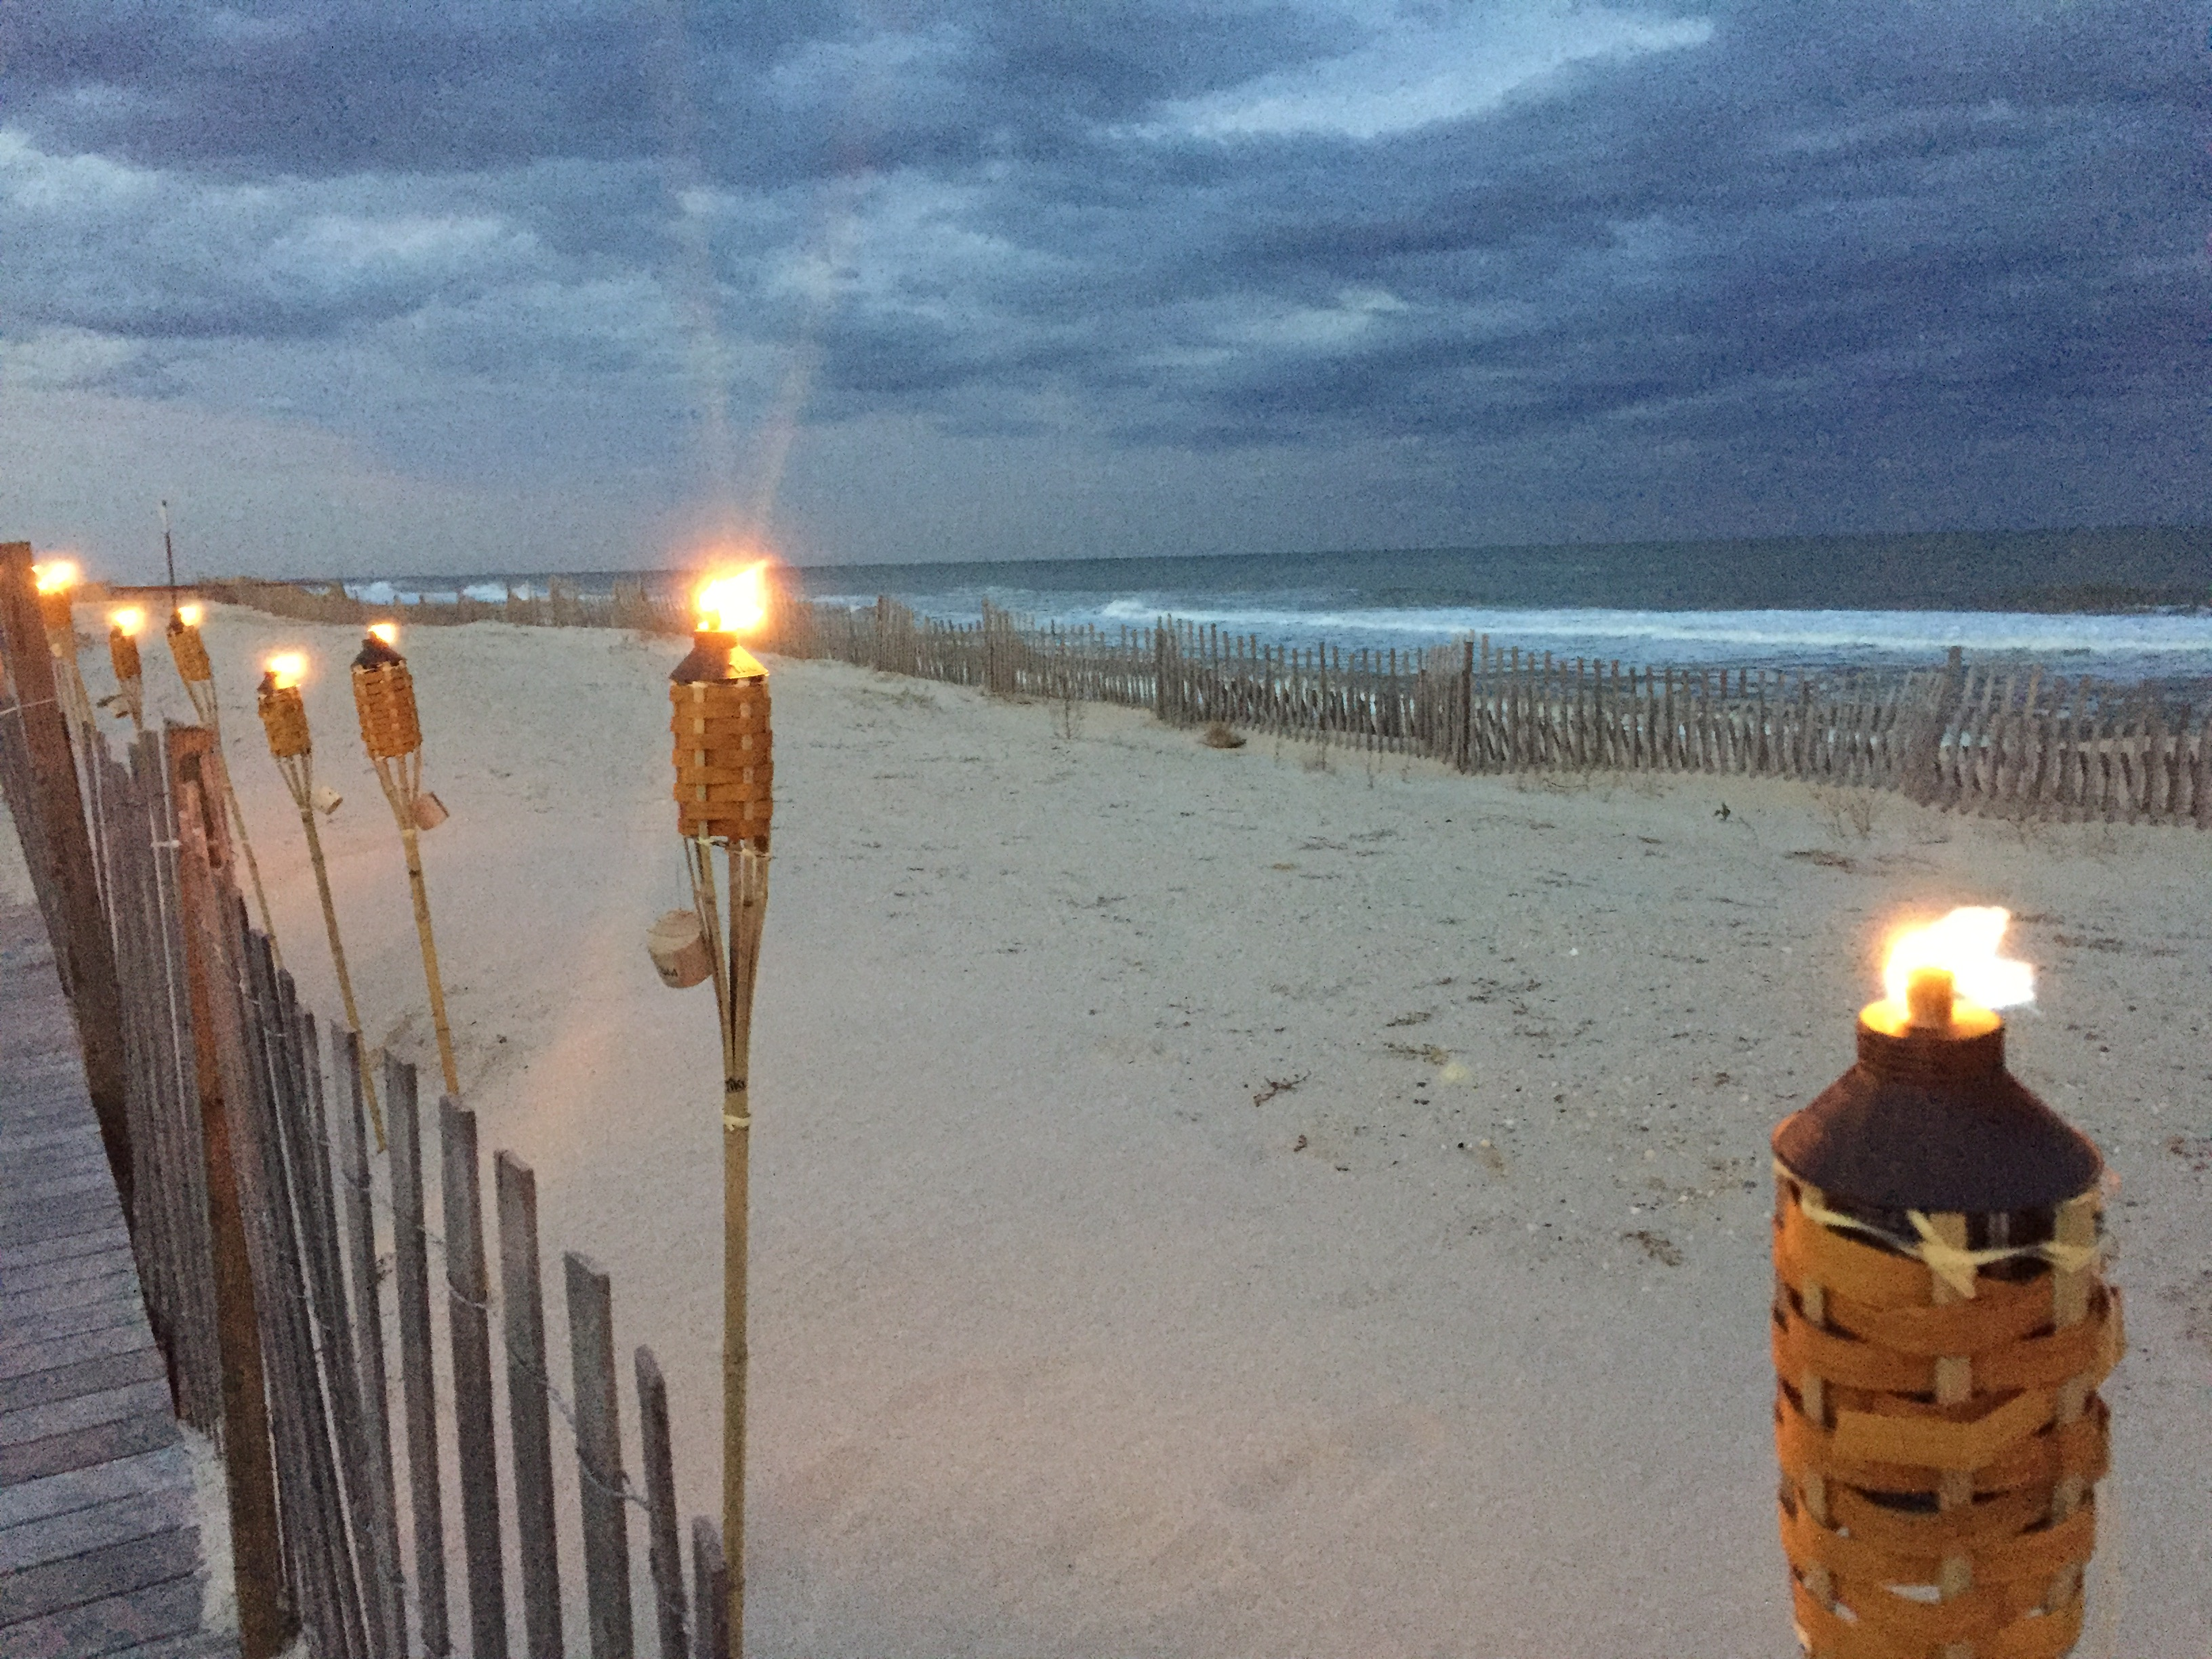 Tiki torches along the Ortley Beach oceanfront. (Photo: Daniel Nee)